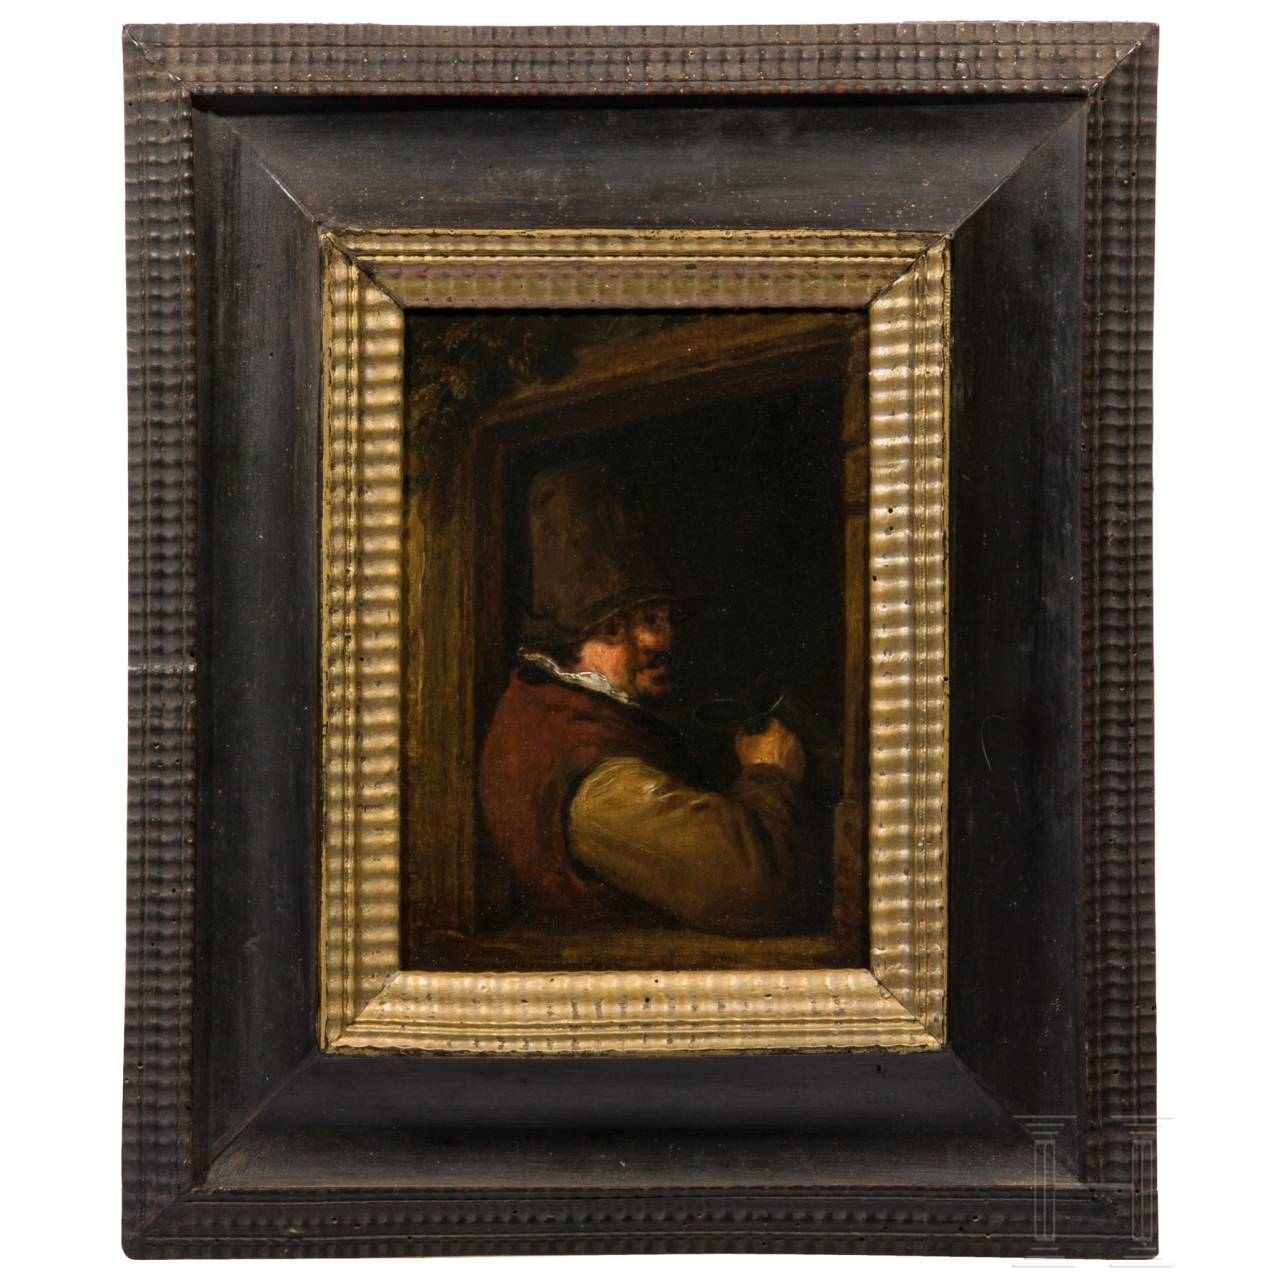 A small Dutch Old Master painting, 17th century